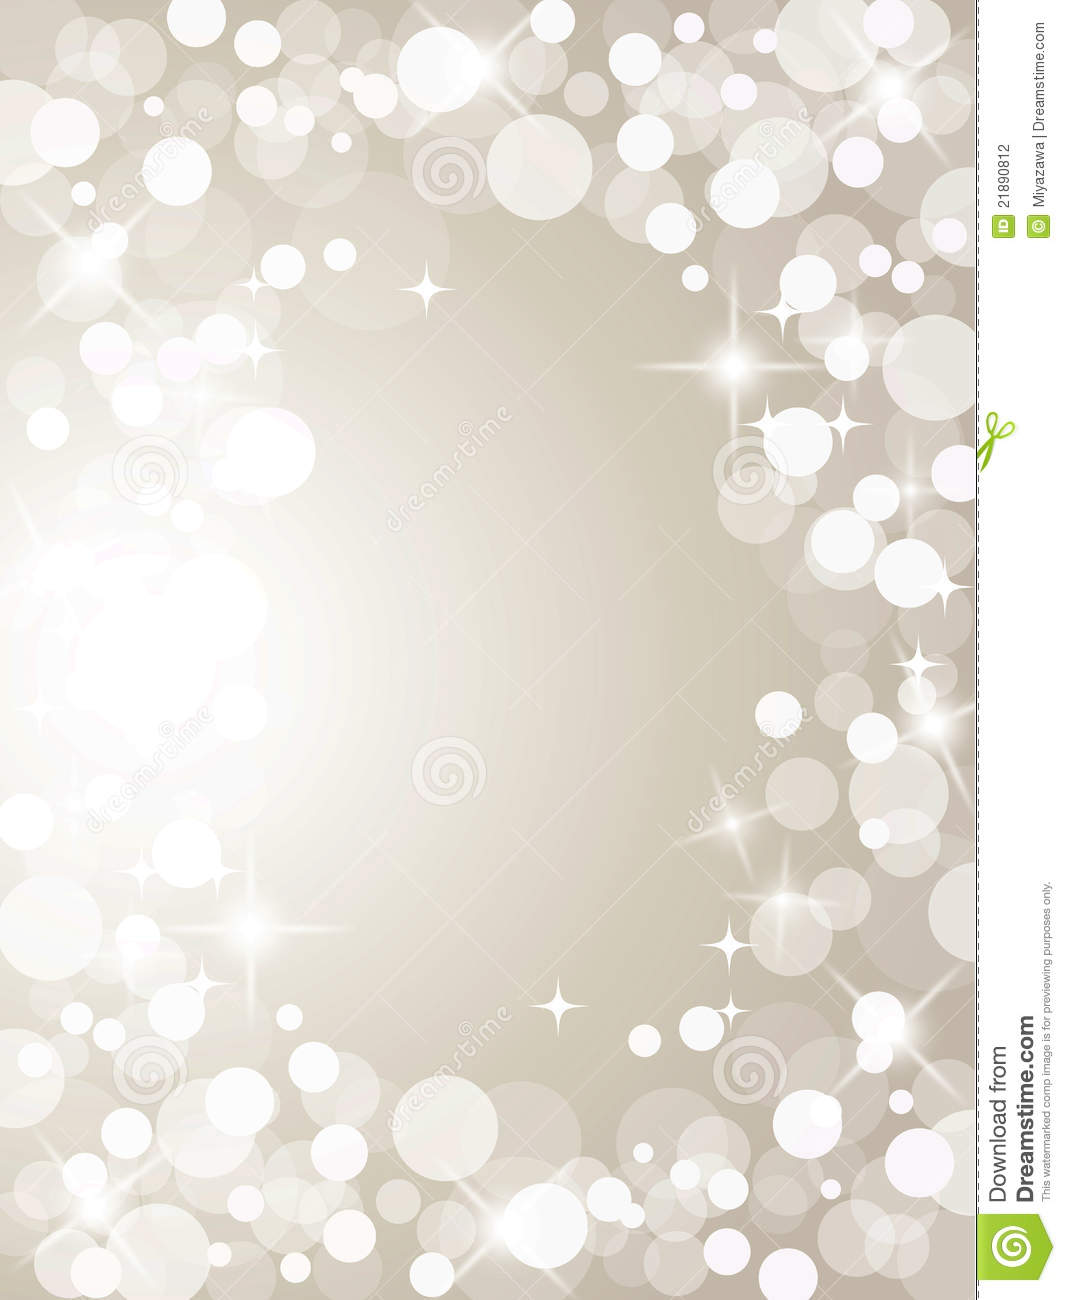 royalty free stock photo download christmas silver lights - Silver Christmas Lights